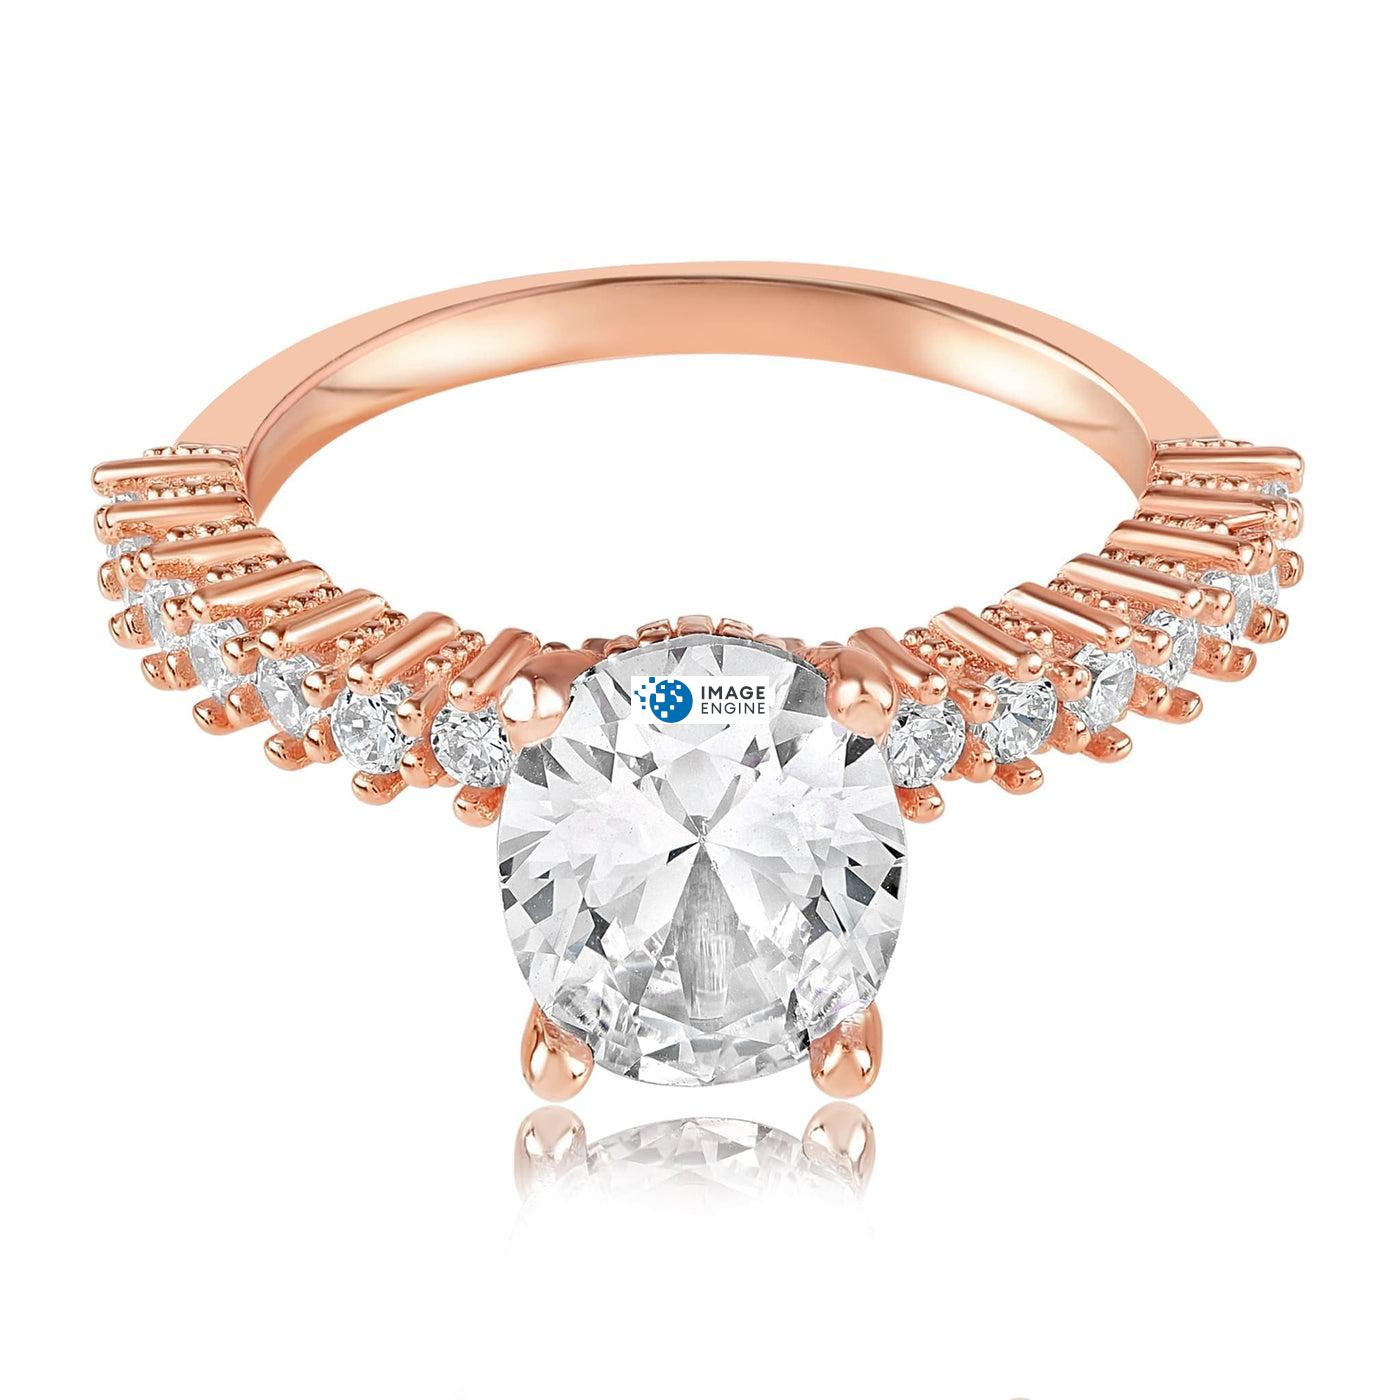 Cara Zirconia Ring - Front View Facing Down - 18K Rose Gold Vermeil